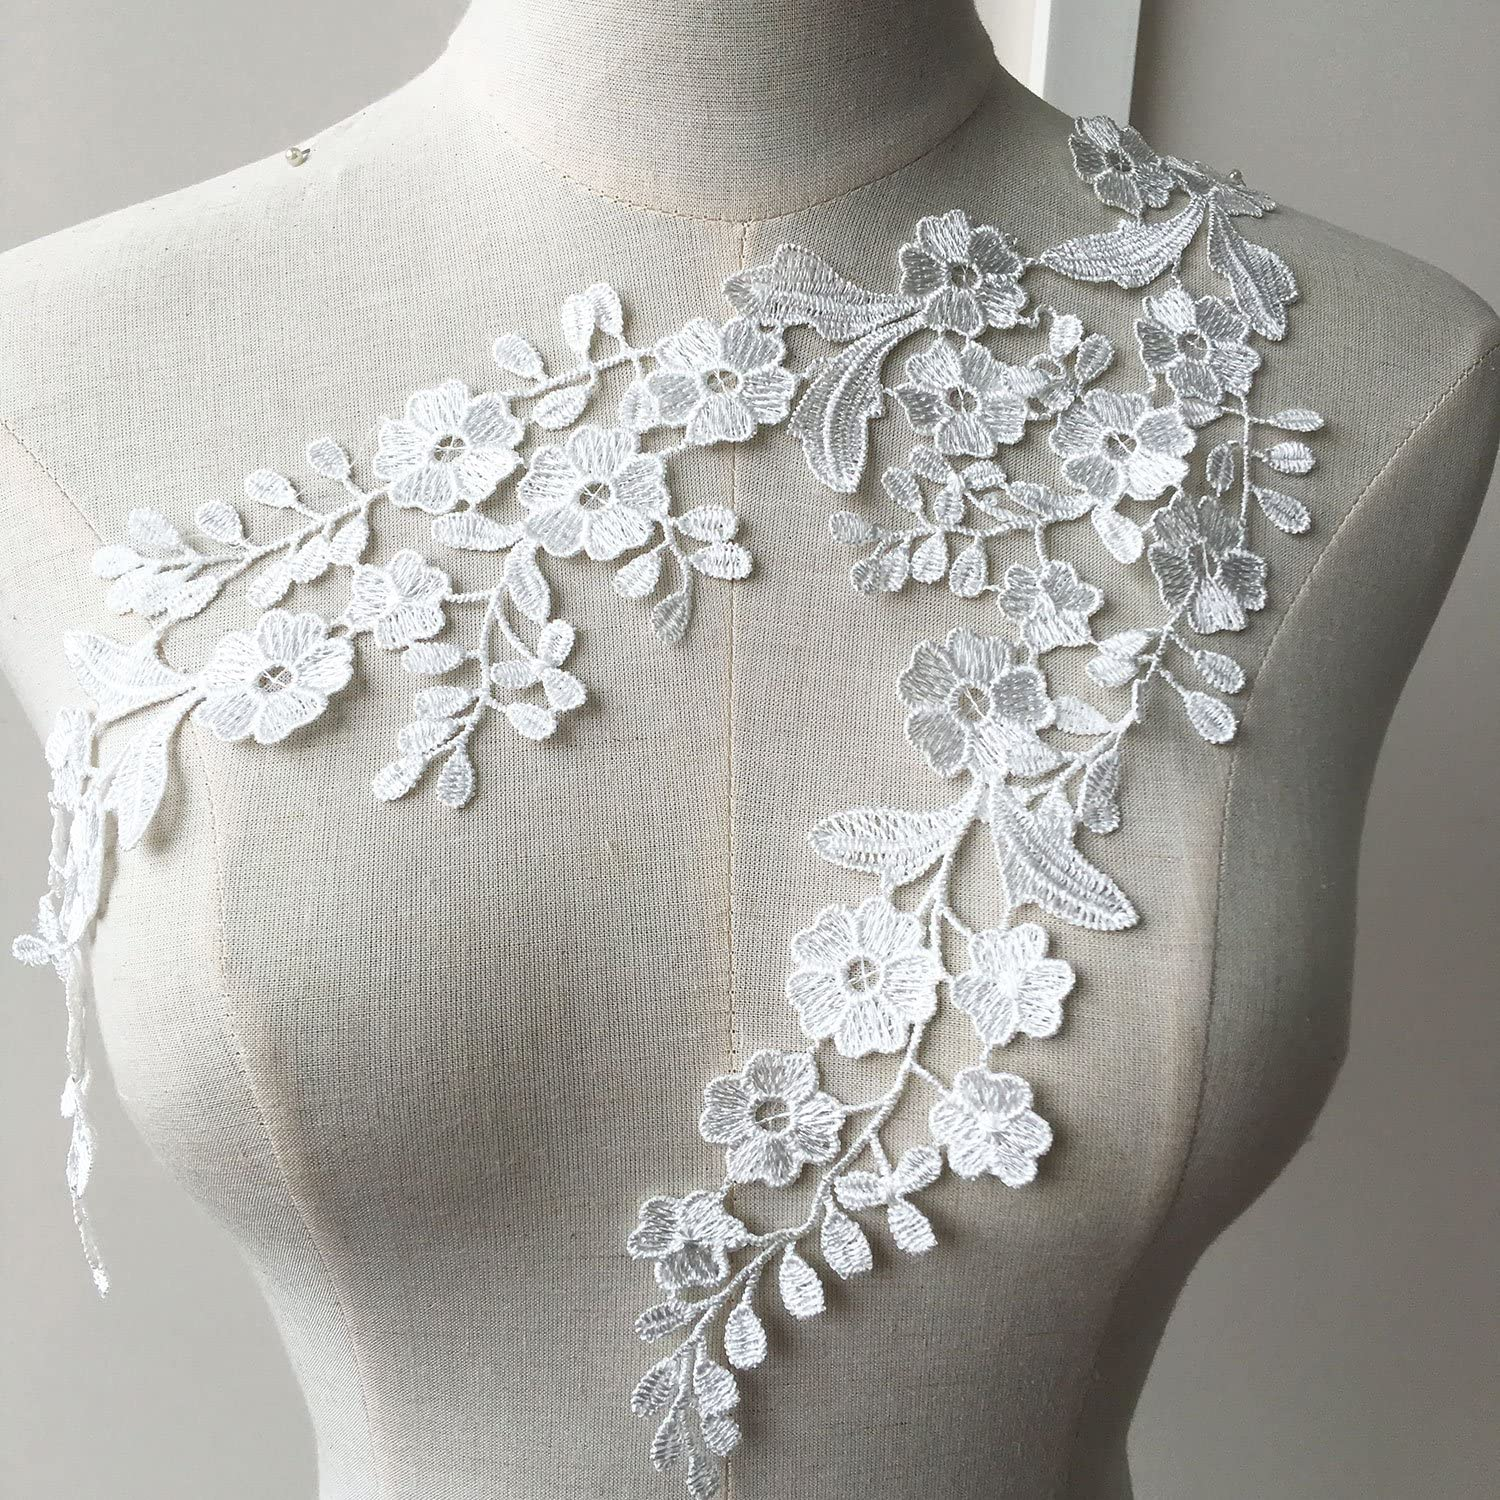 Off-White Bridal Dress Bodices Applique Corded Embroideried Floral Lace Patch Vintage Lace Addition for Dress Hem Wedding Veil